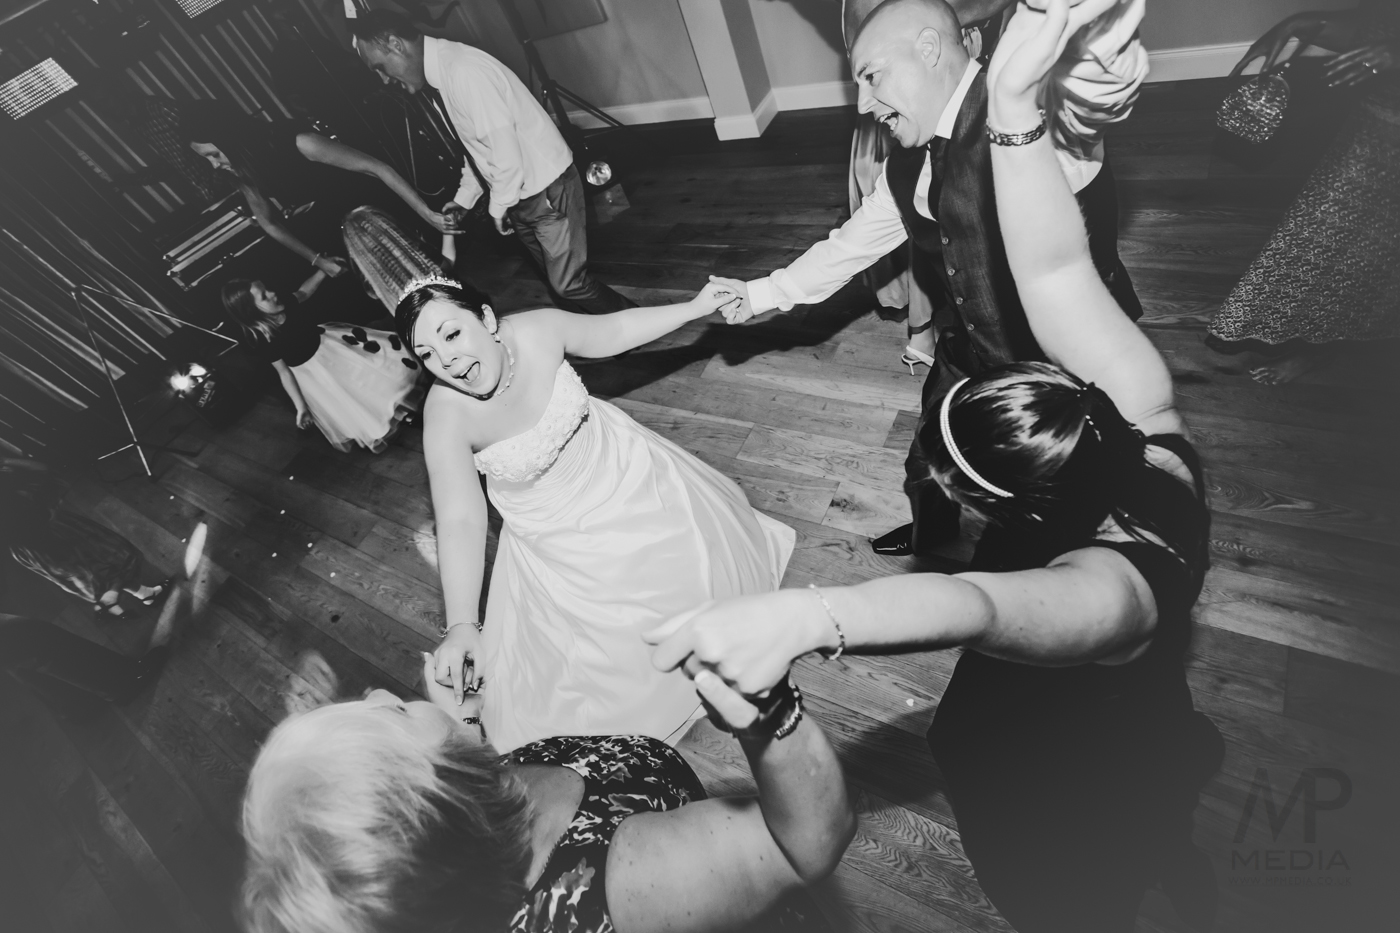 610 - Chris and Natalies Wedding (MAIN) - DO NOT SHARE THIS IMAGES ONLINE -1013.JPG